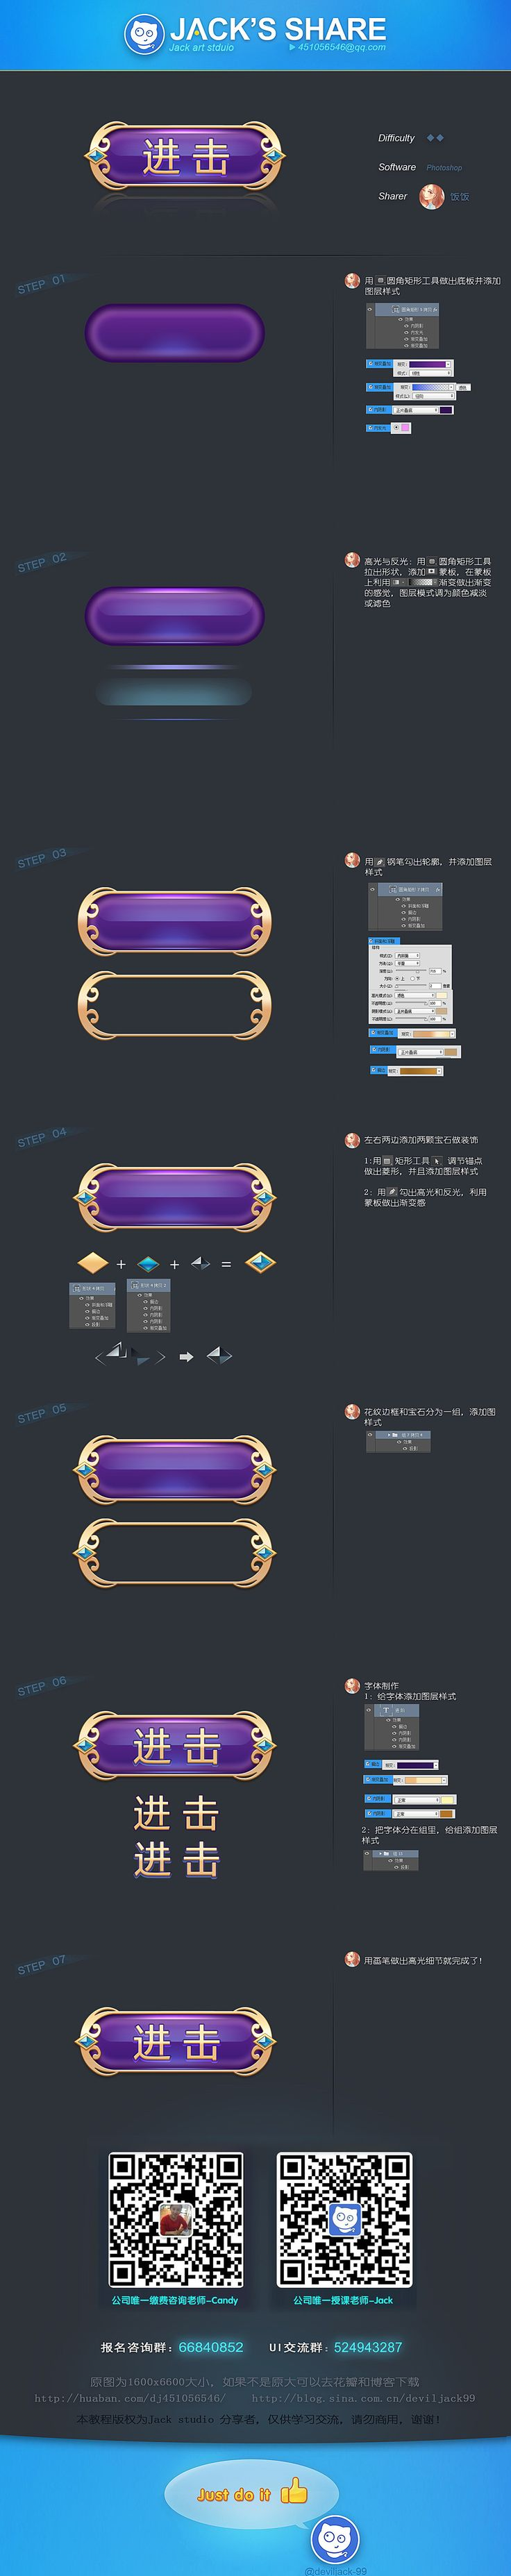 Jack game UI classmates works (interface, icons, game ui, u